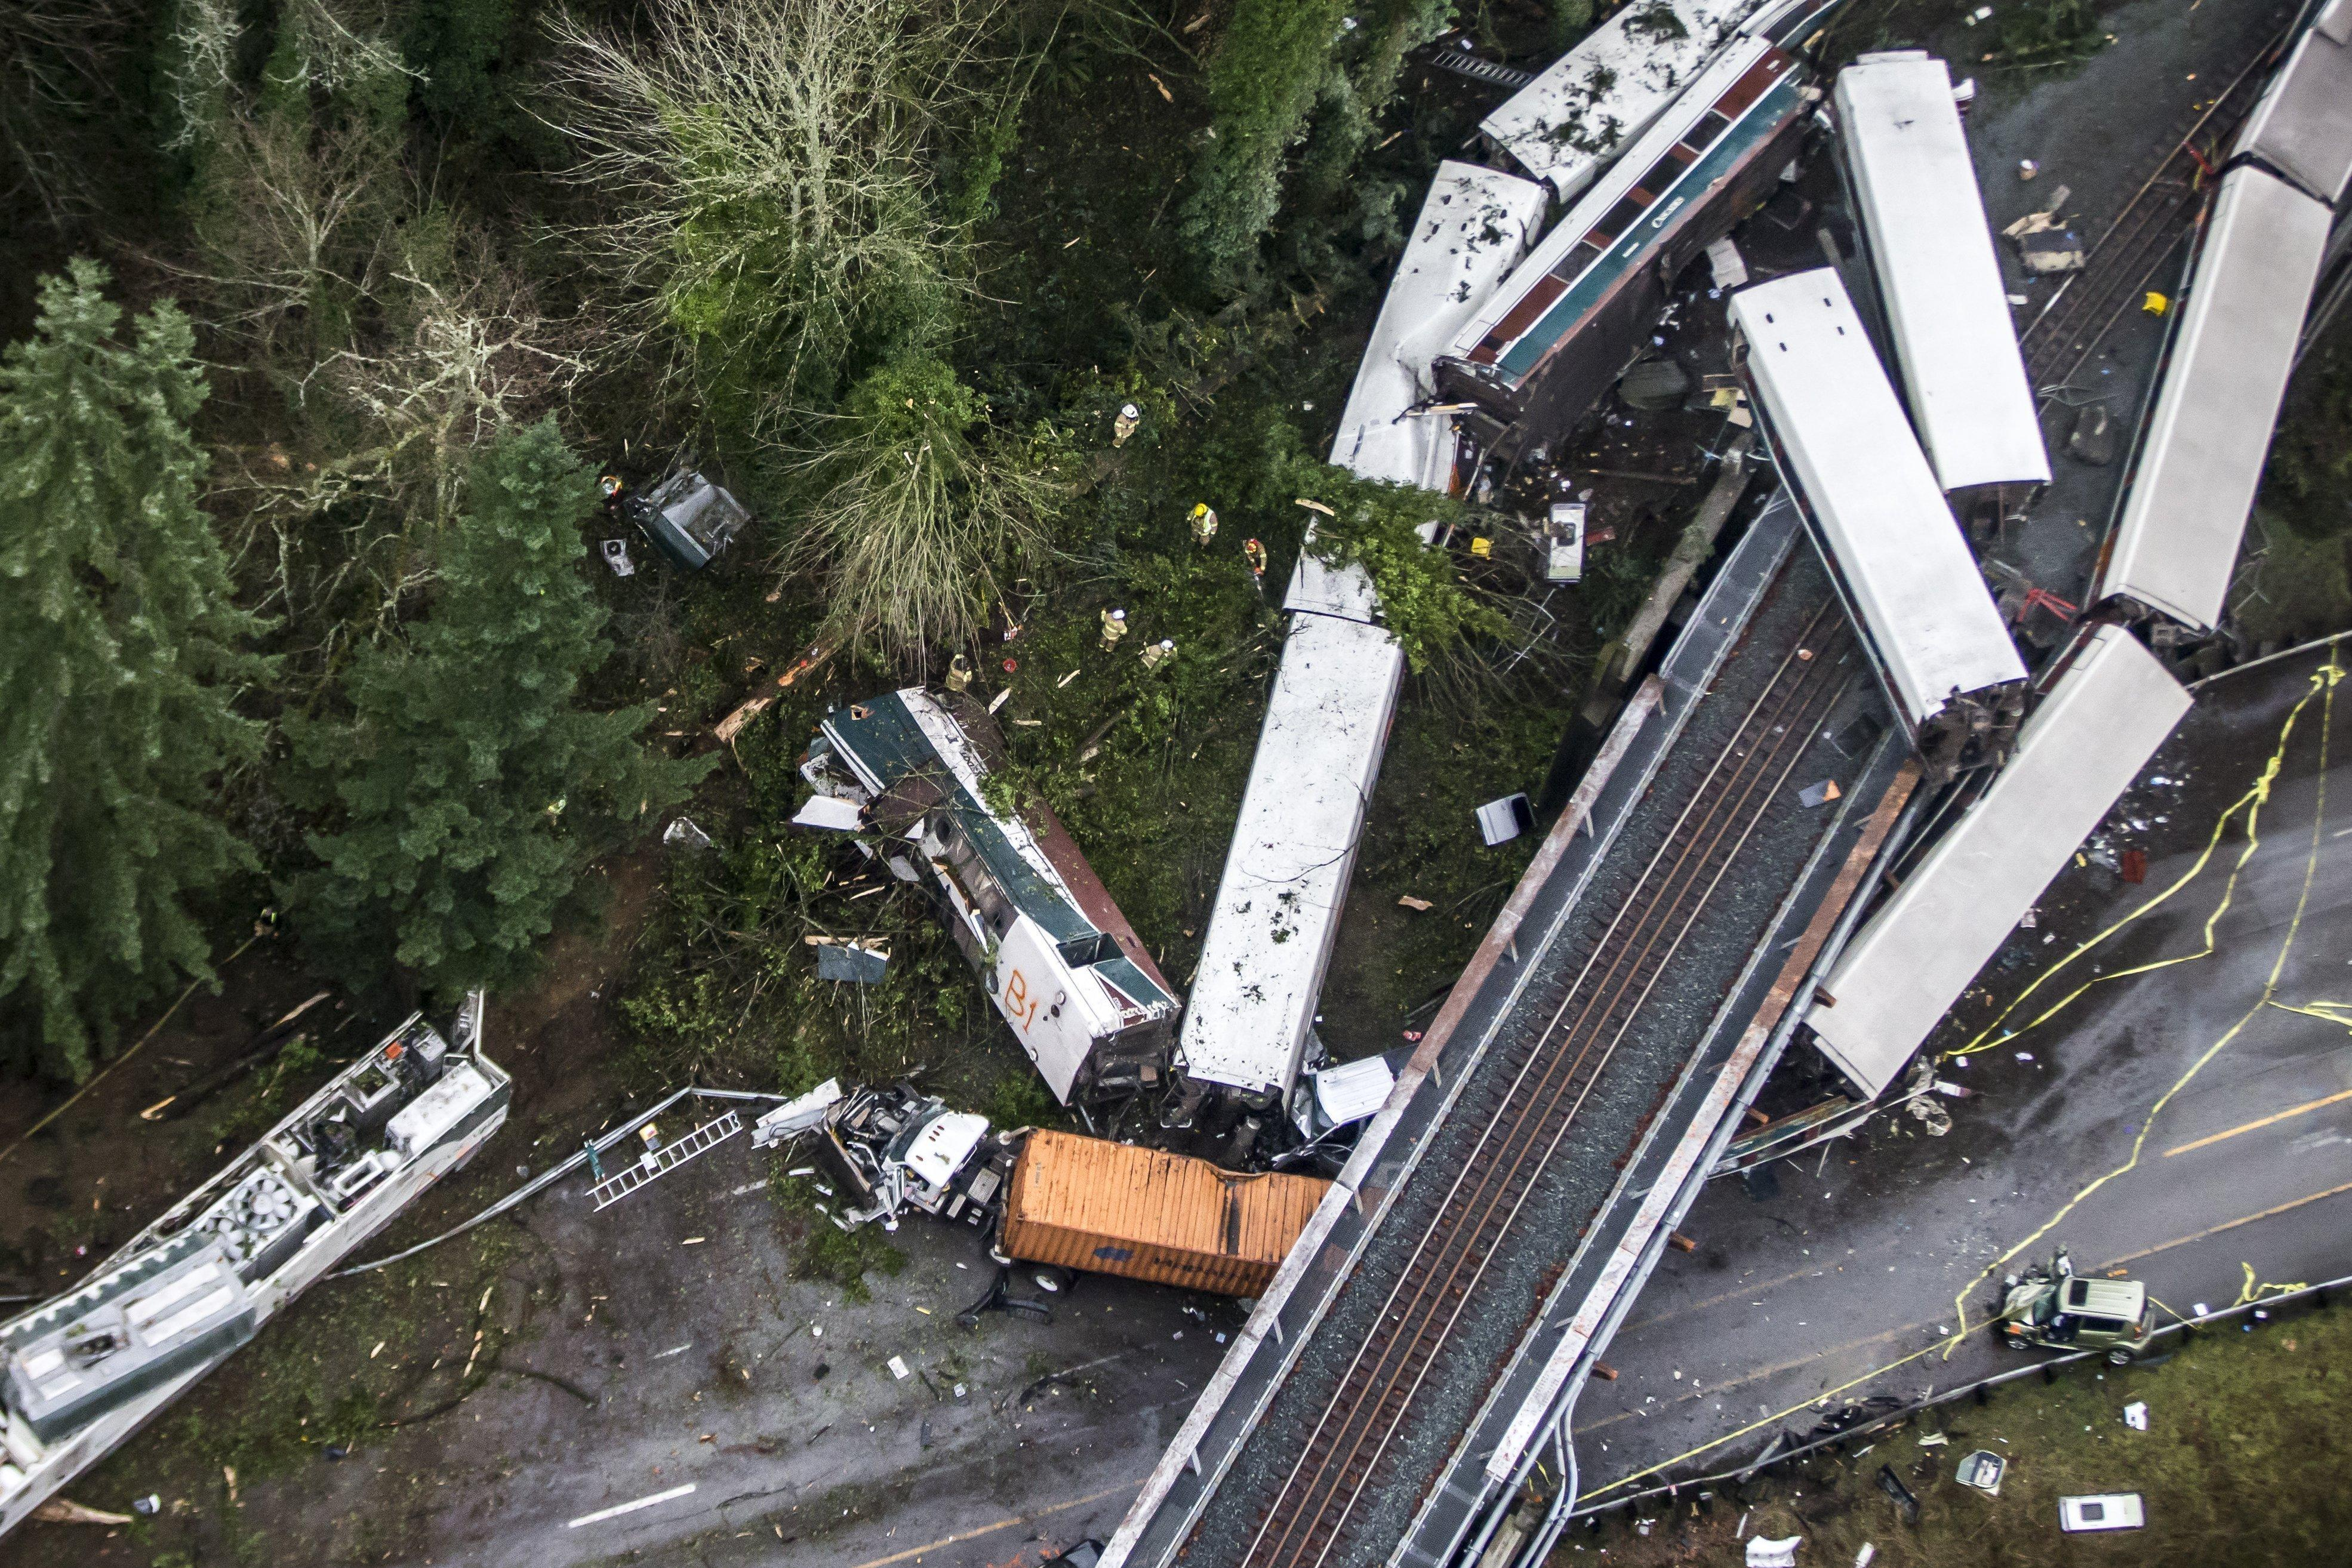 Cars from an Amtrak train that derailed above lie spilled onto Interstate 5, Monday, Dec. 18, 2017, in DuPont, Wash. The Amtrak train making the first-ever run along a faster new route hurtled off the overpass Monday near Tacoma and spilled some of its cars onto the highway below, killing several people, authorities said. (Bettina Hansen/The Seattle Times via AP)